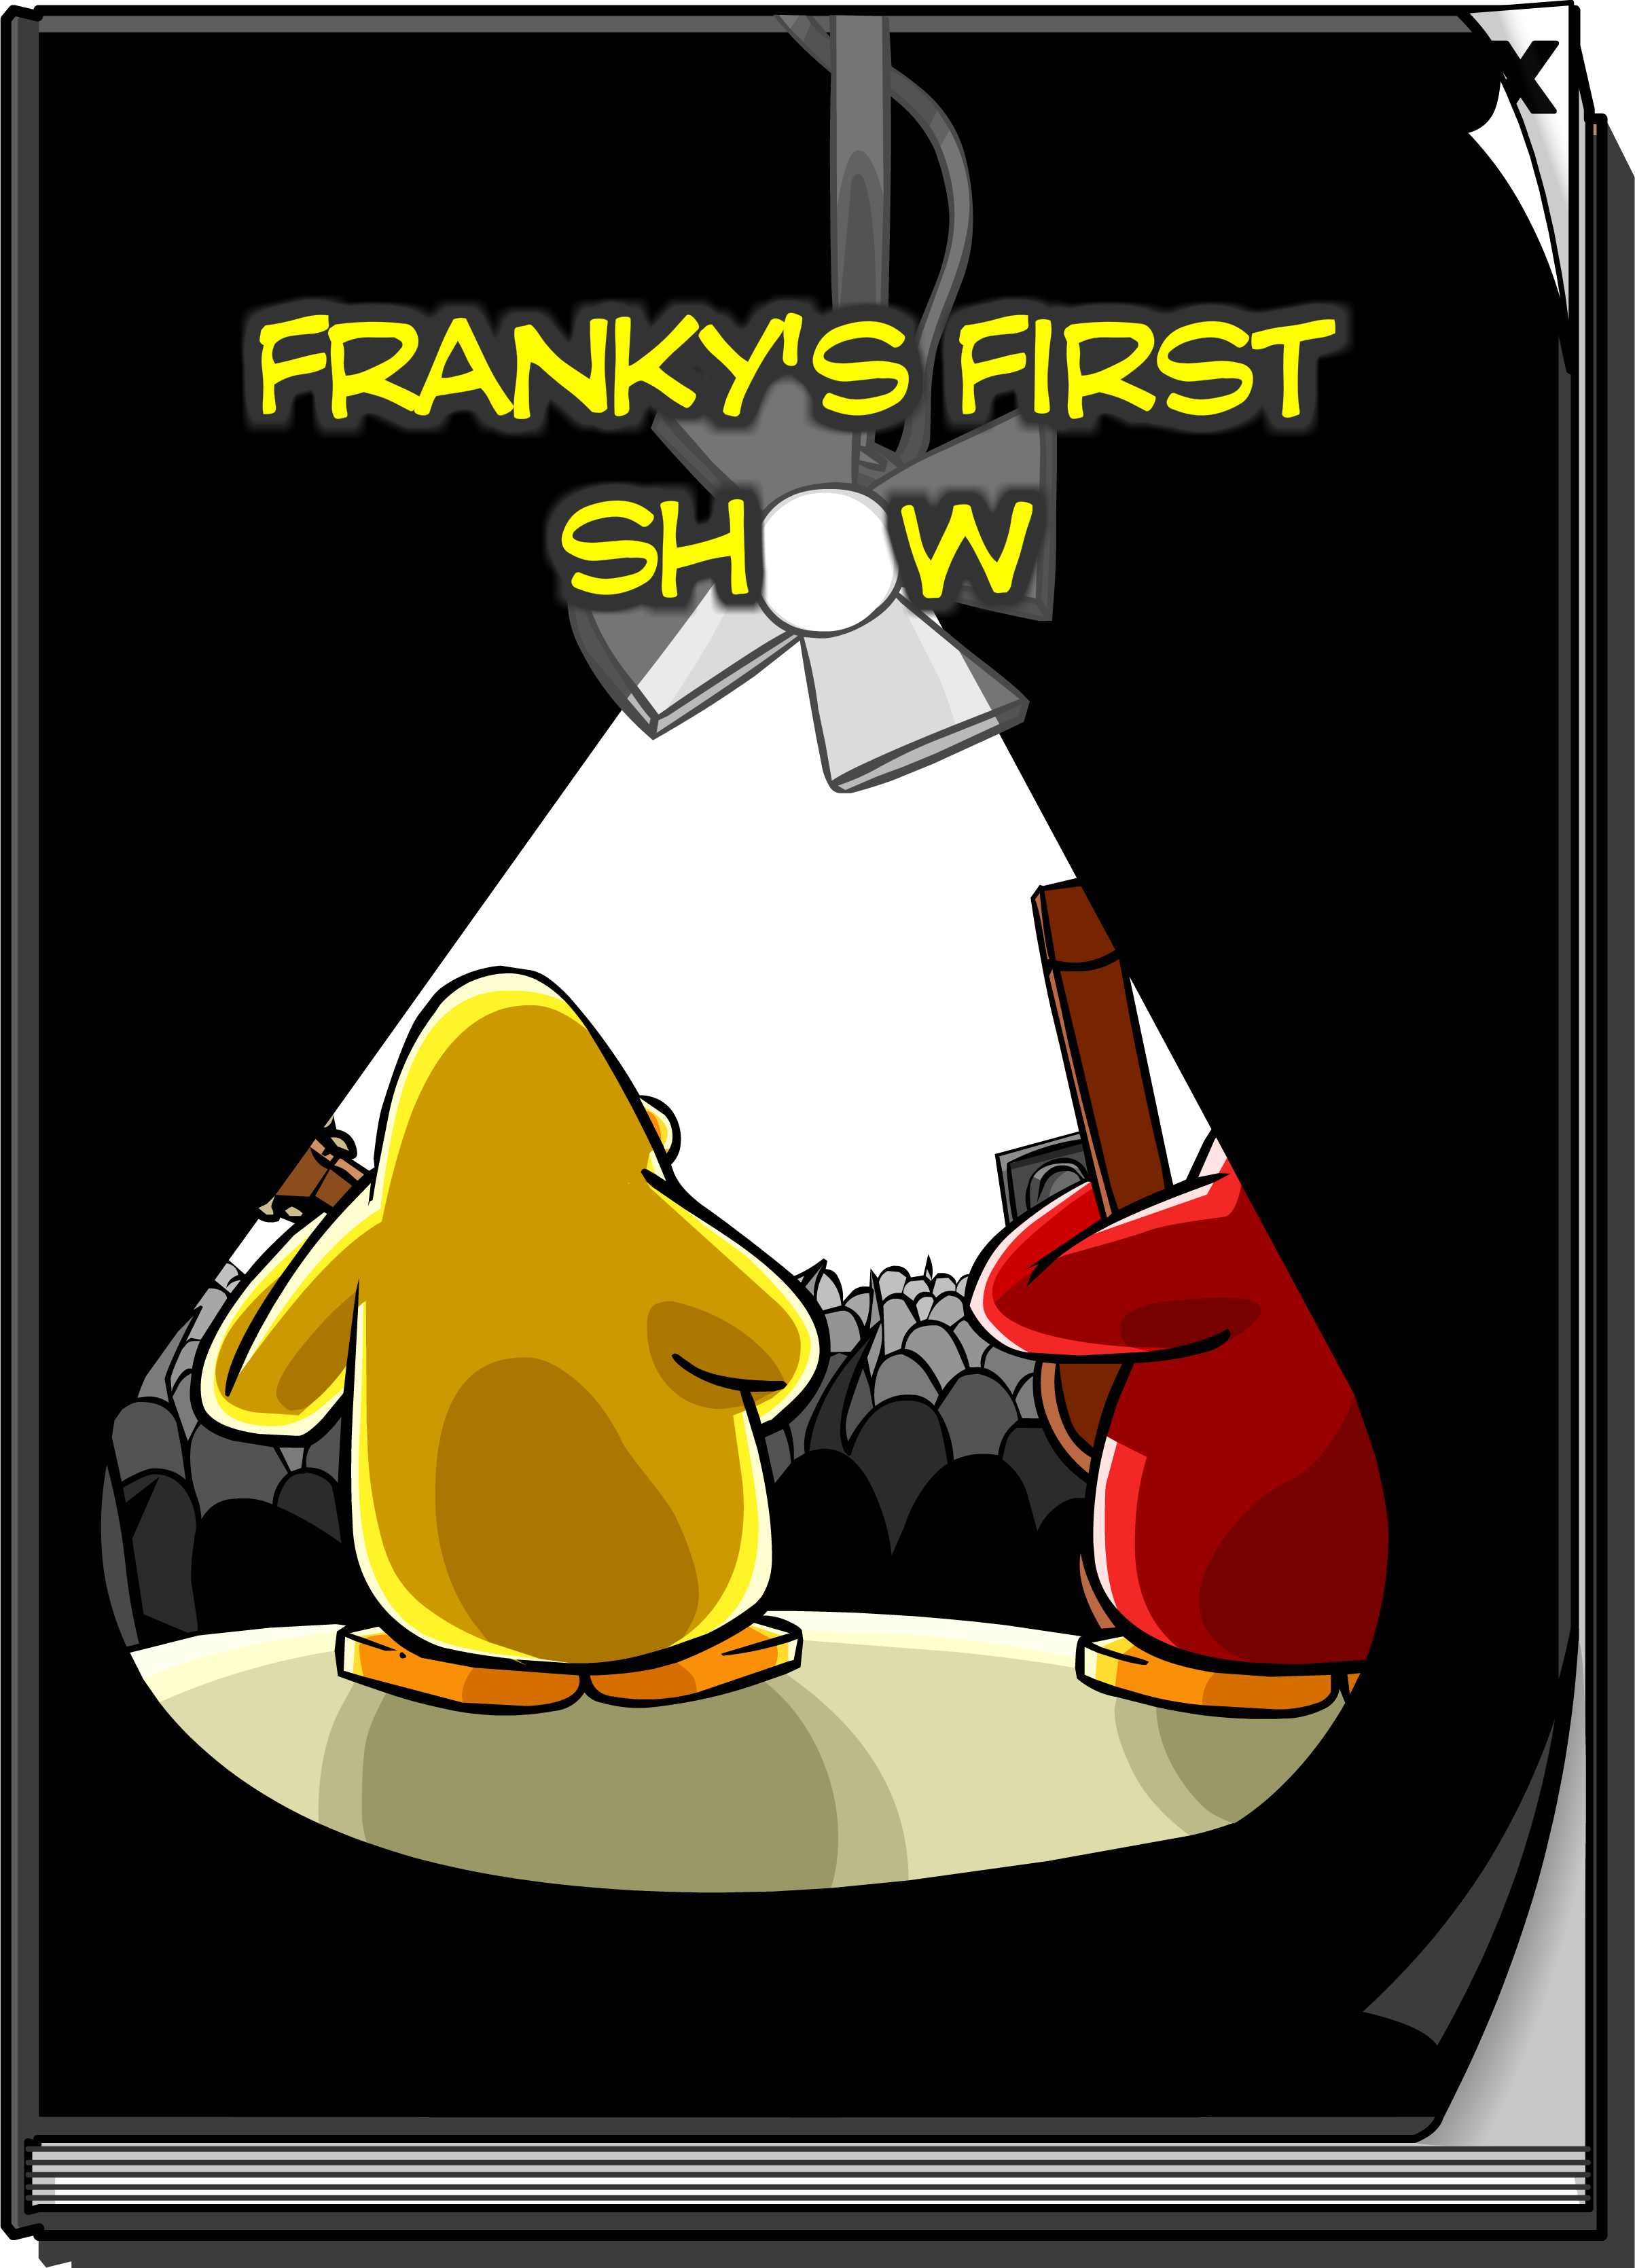 Franky's First Show